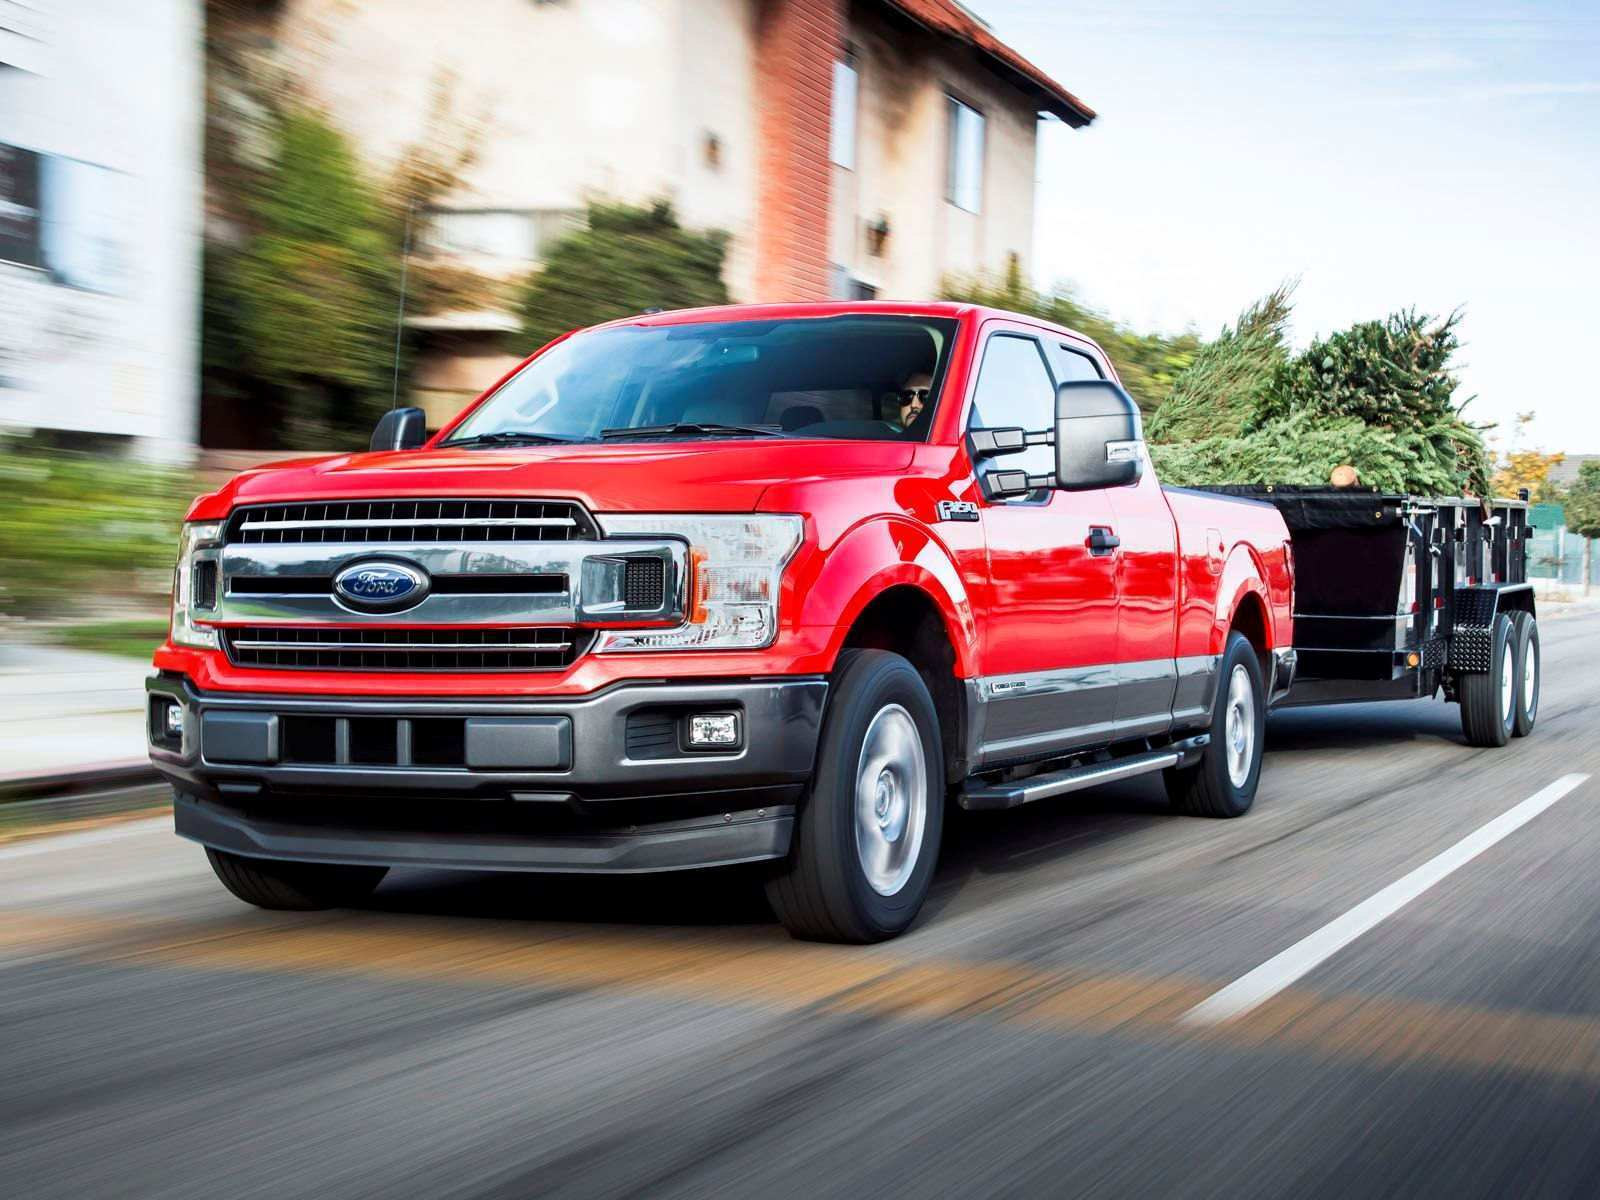 70 All New 2019 Ford 150 Diesel Specs and Review with 2019 Ford 150 Diesel